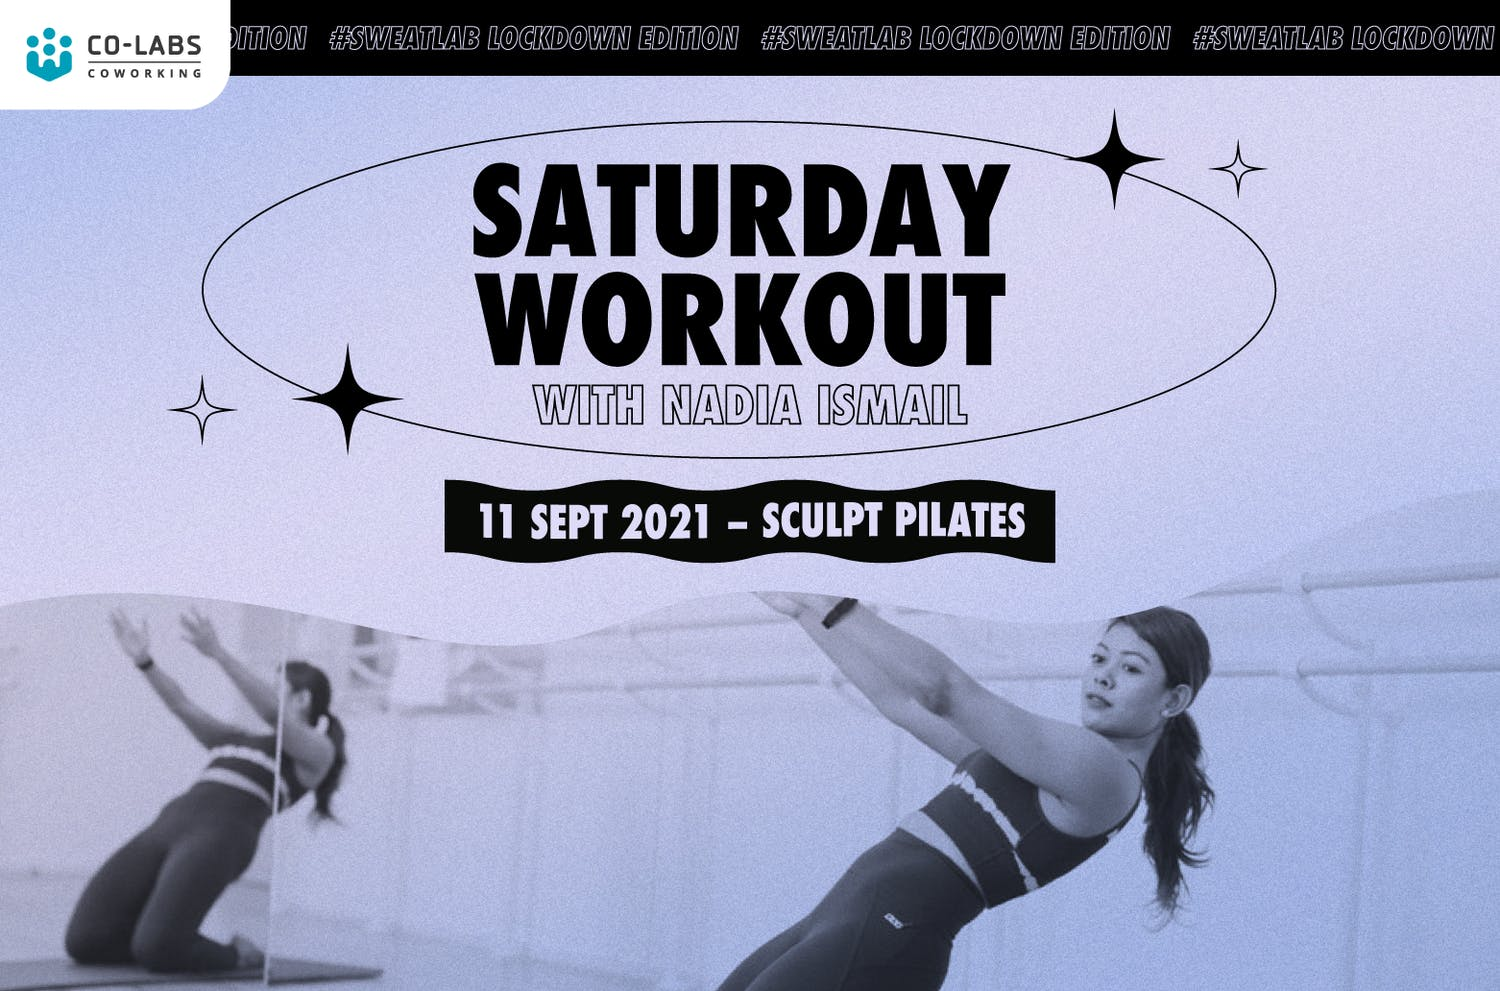 #SweatLab Lockdown Edition: Saturday Workout with Nadia Ismail (Sculpt Pilates)